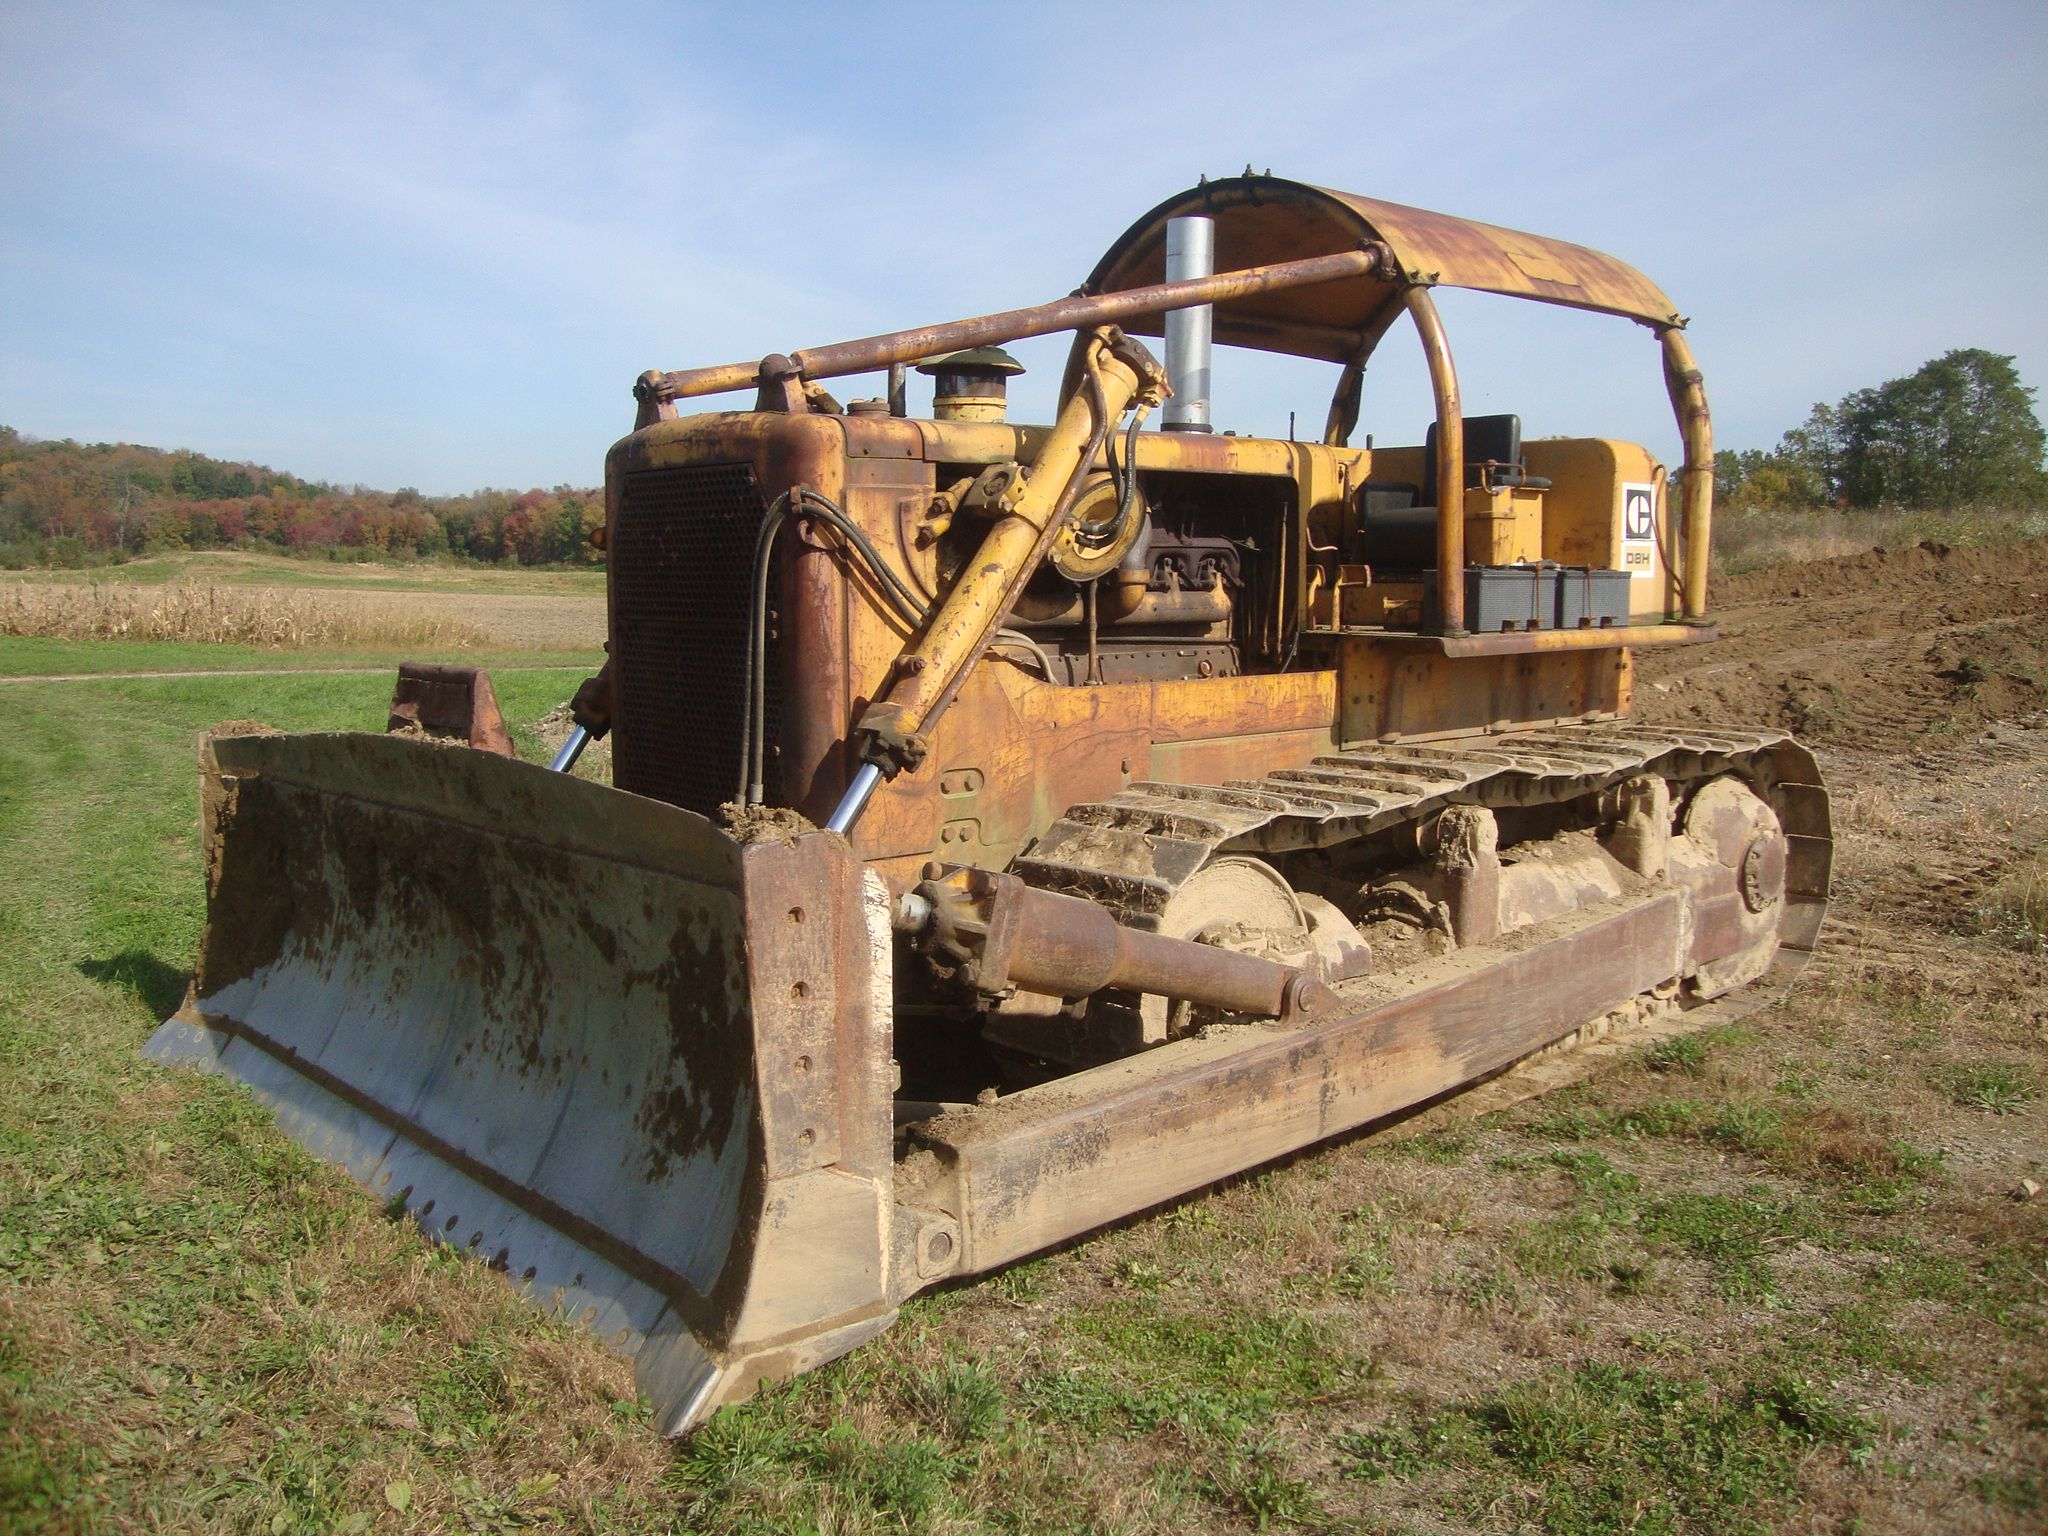 1967 Caterpillar D8H Crawler Tractor used | A Look Back in